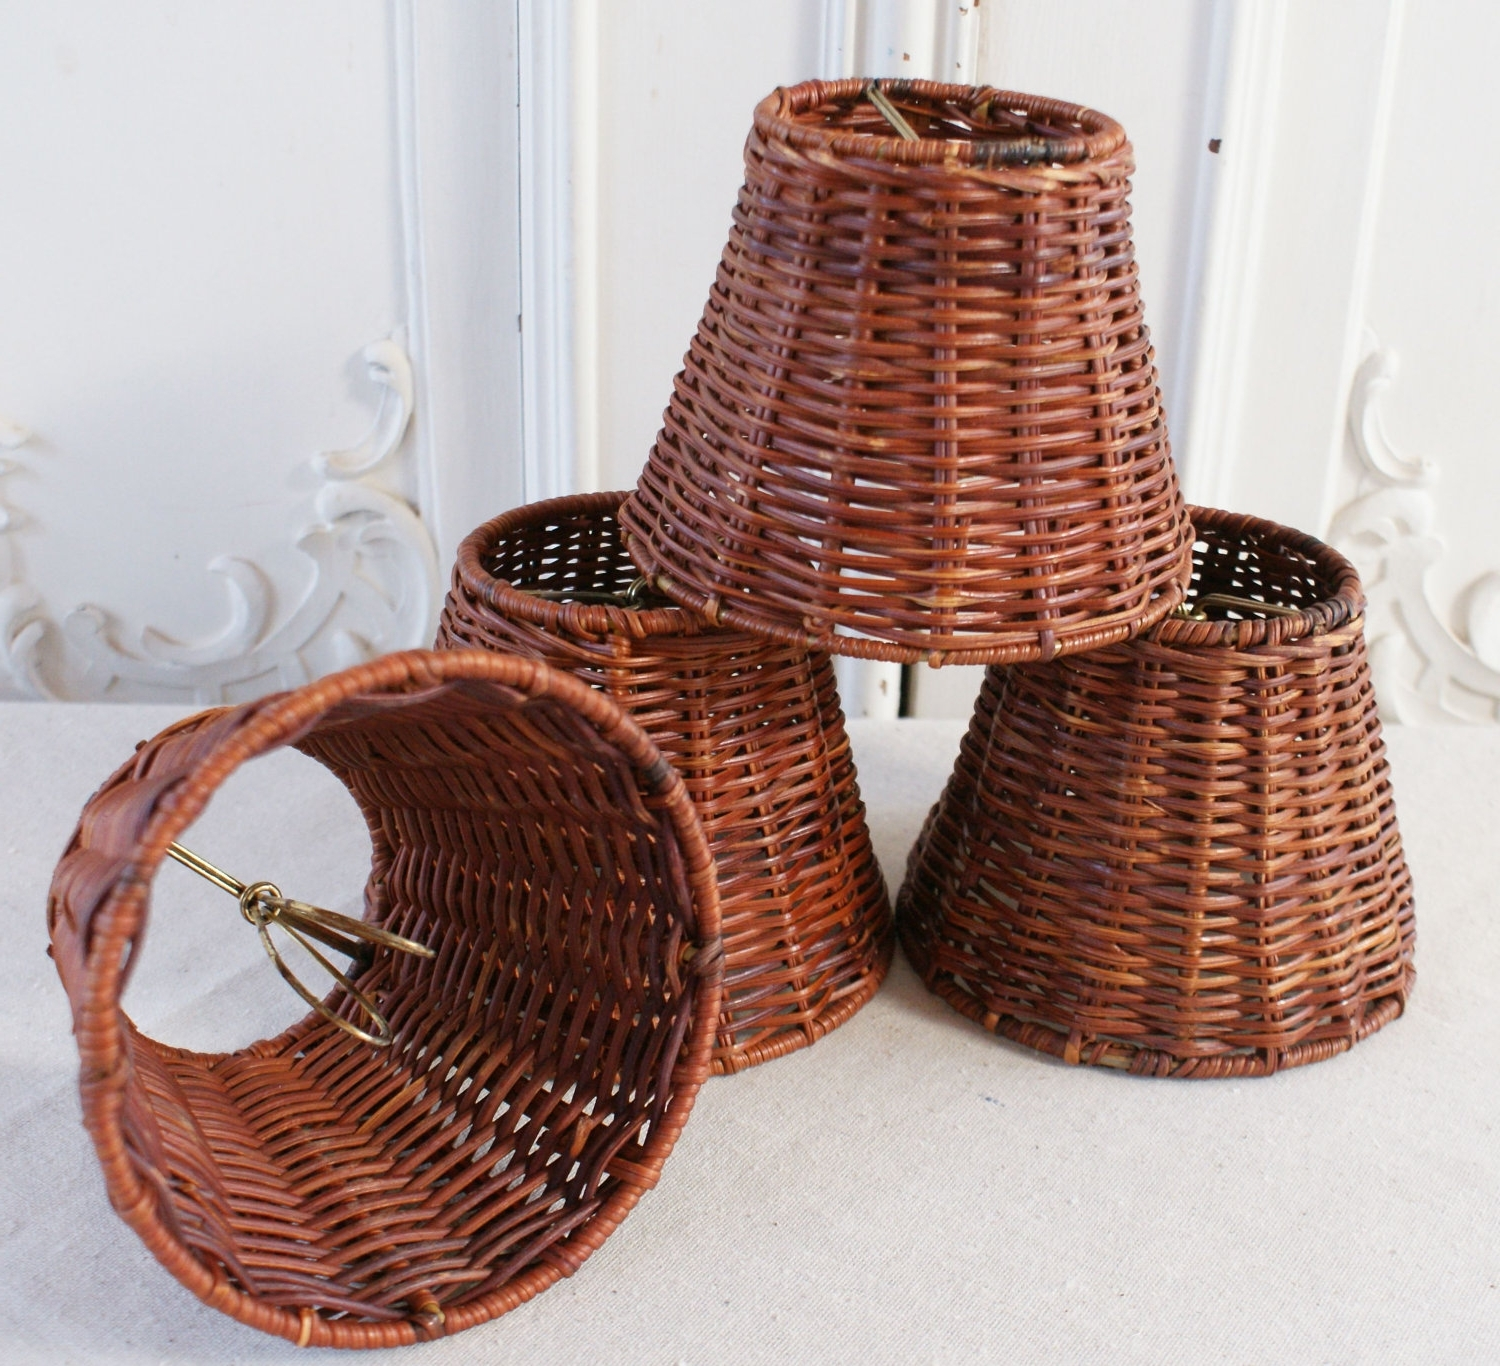 Chandeliers Design : Marvelous Wicker Chandelier With Lamp Shades Throughout Fashionable Chandelier Lamp Shades Clip On (View 9 of 20)